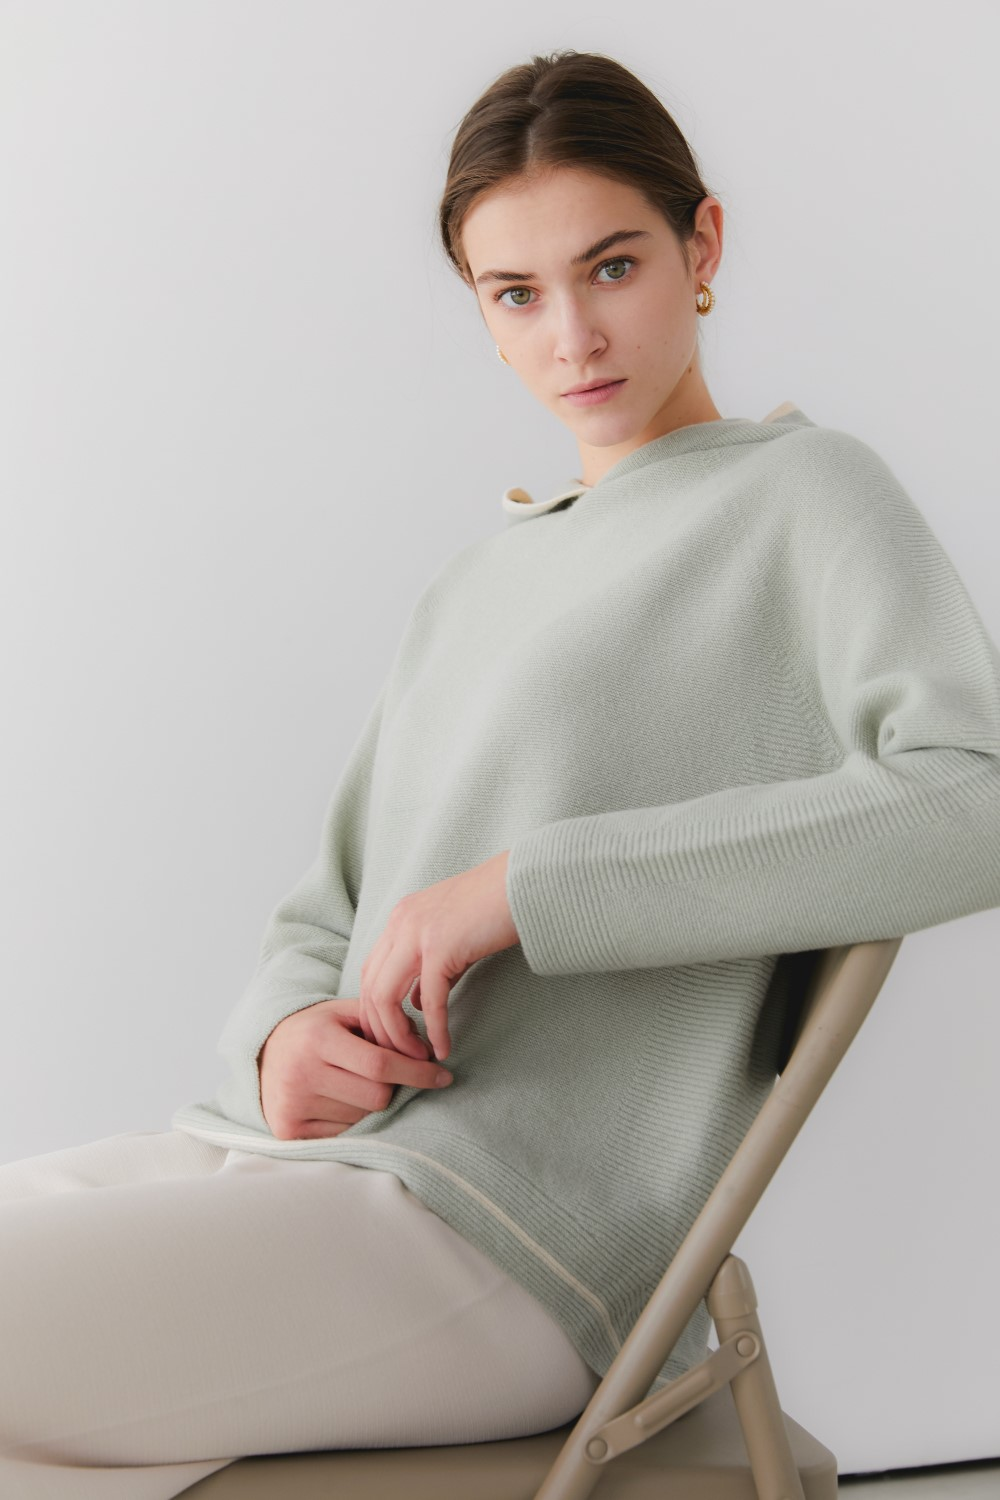 프리미엄 캐시미어 100 홀가먼트 후디 [Premium pure cashmere100 whole-garment knitting hoodie - Sage mint]